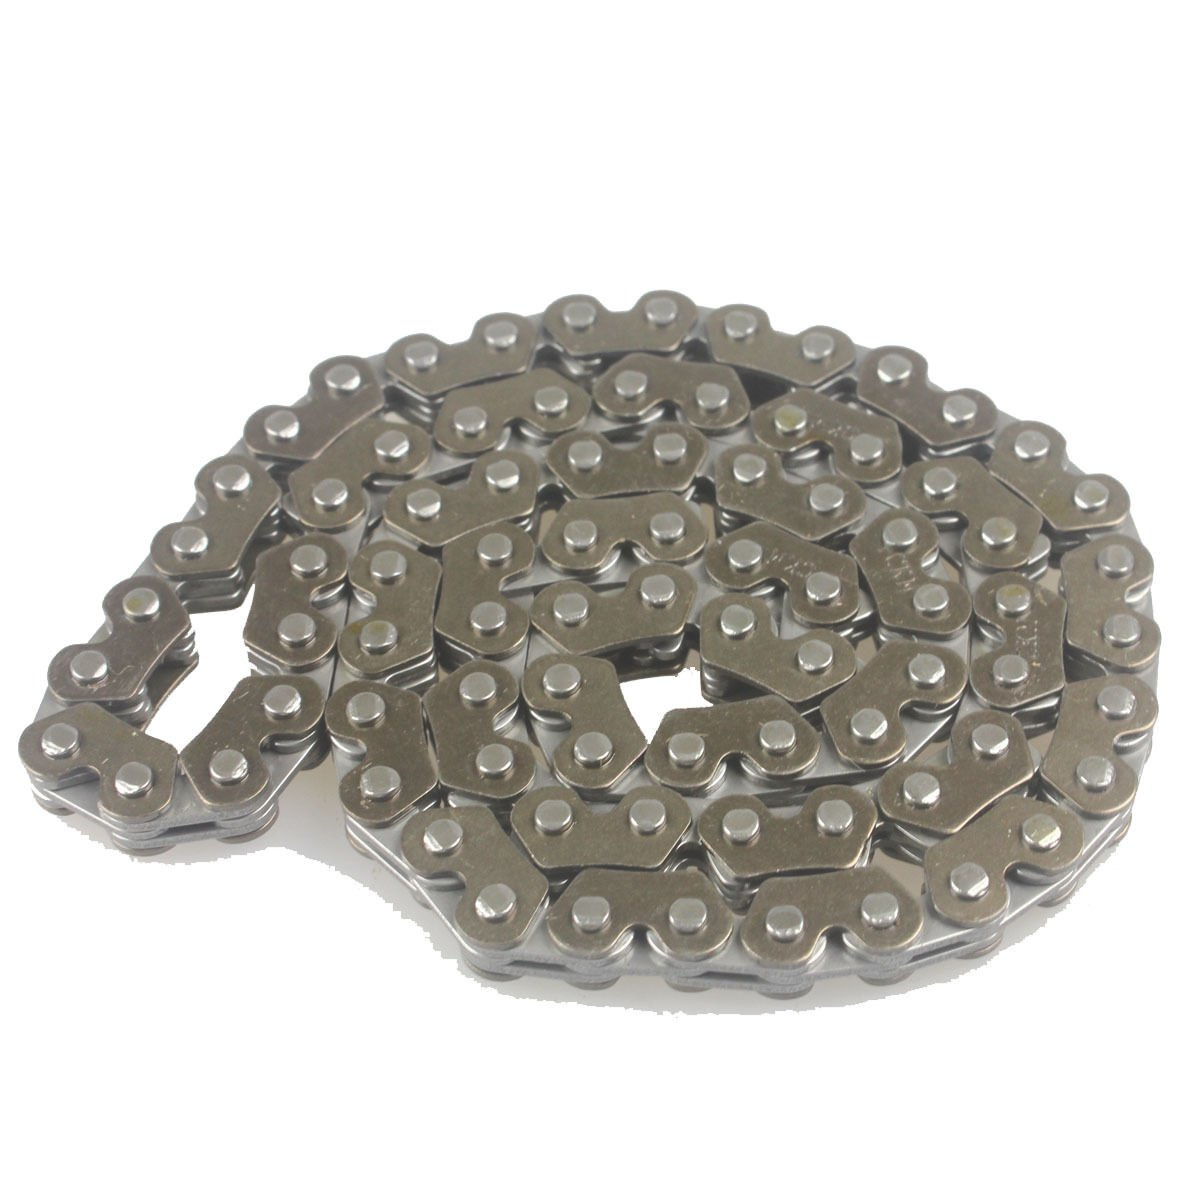 wingsmoto Timing Chain 82 Links 10 GY6 50cc Scooter 139QMB Engine Baja Jonway Lance BMX